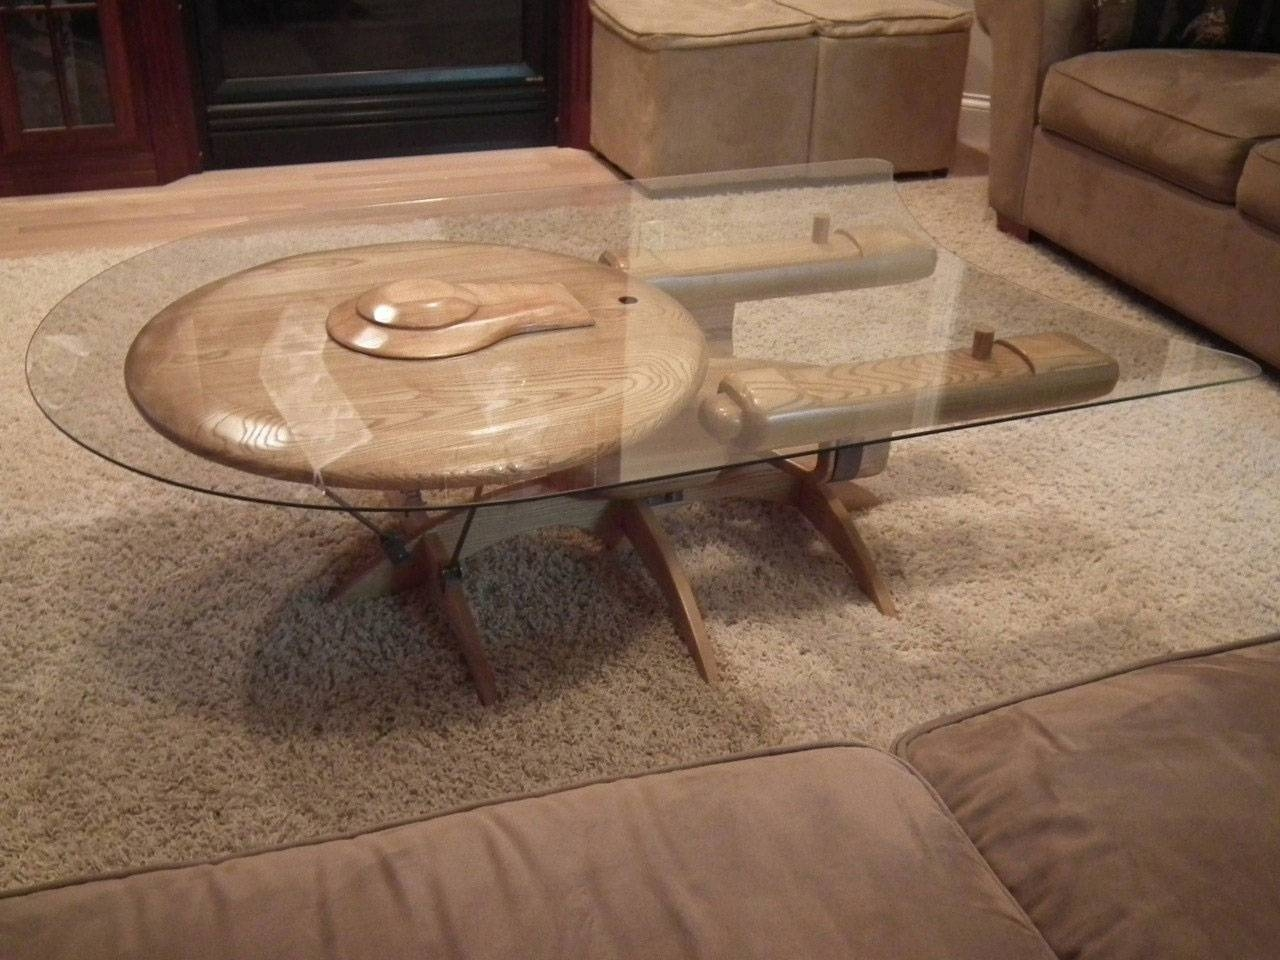 Star Trek Uss Enterprise Ncc 1701-C Coffee Table - The Green Head inside C Coffee Tables (Image 26 of 30)